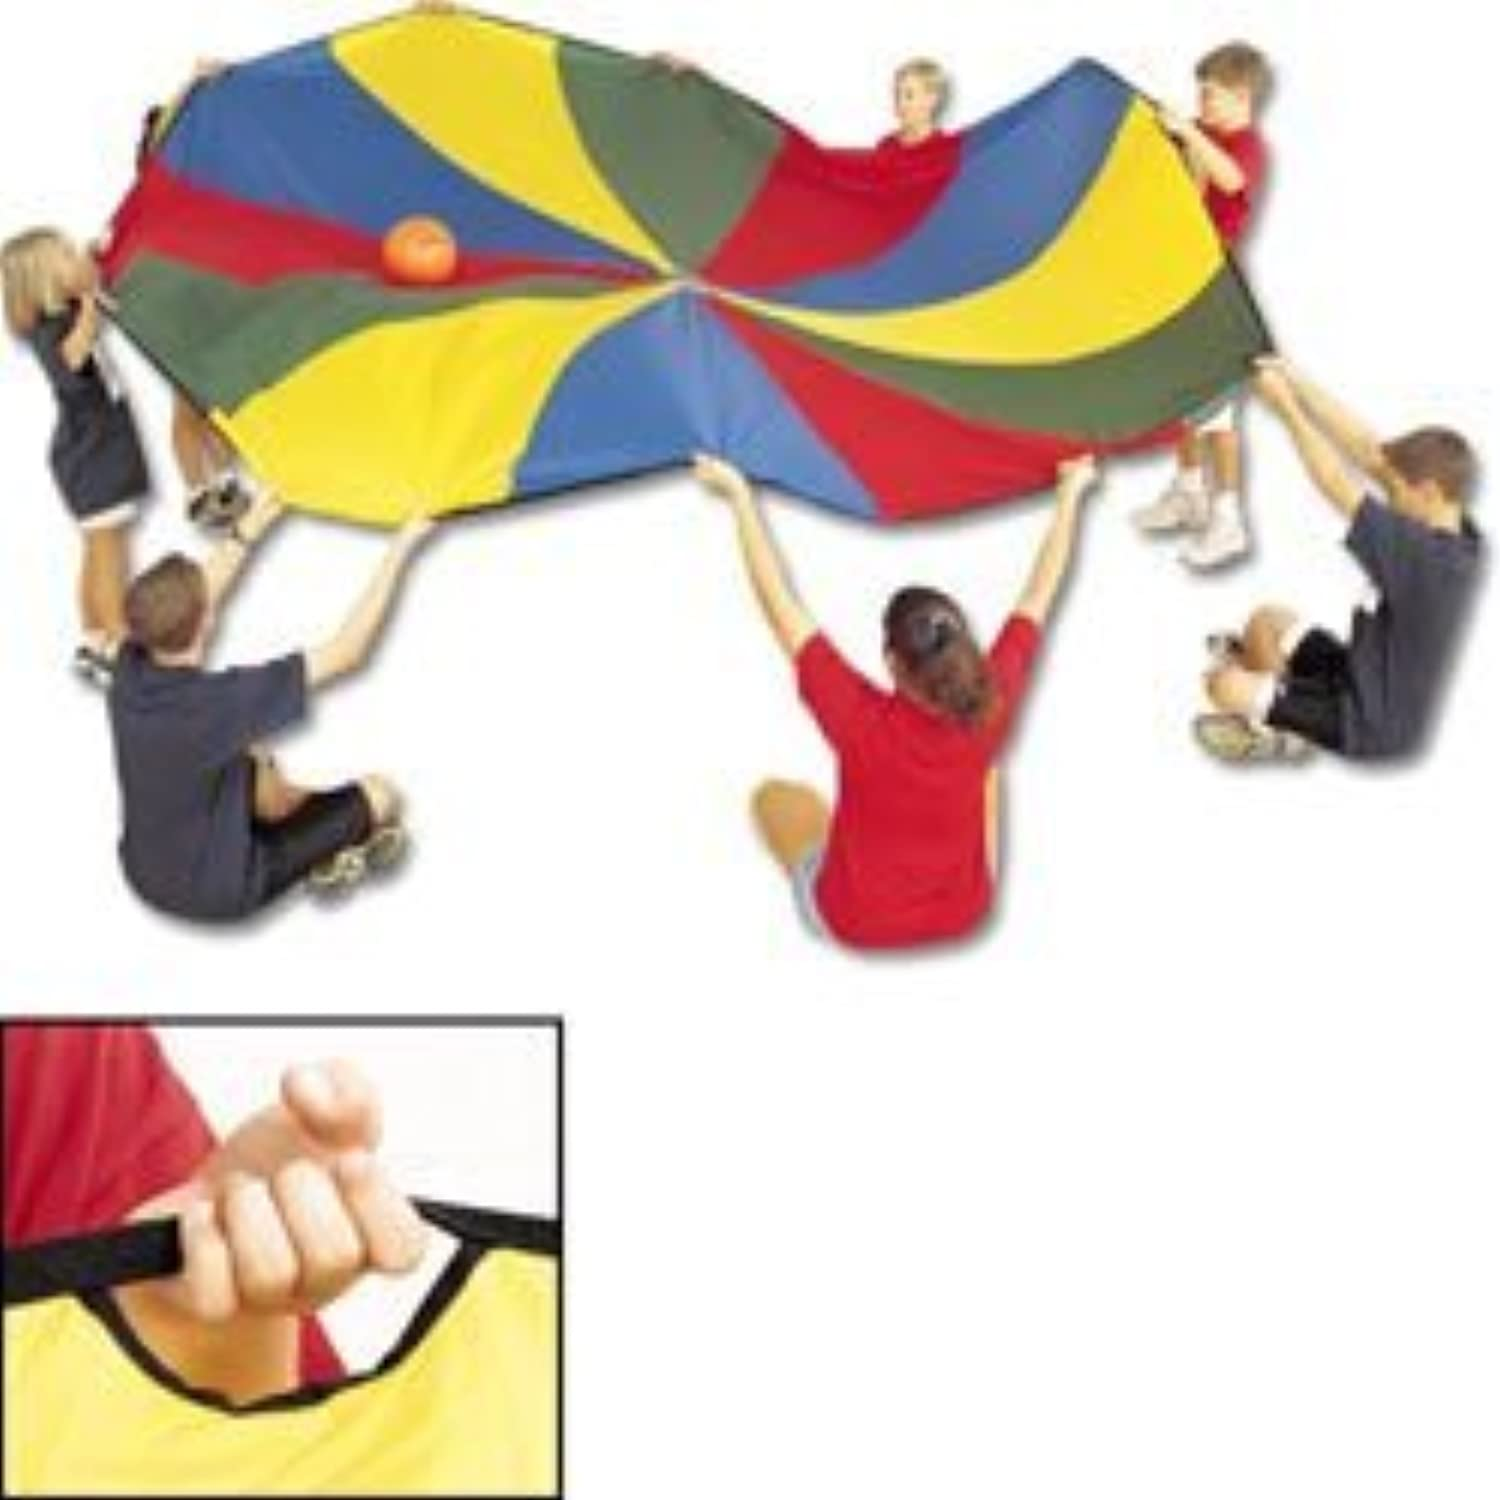 US Games Parachute With 32 Handles (45Foot) by US Games